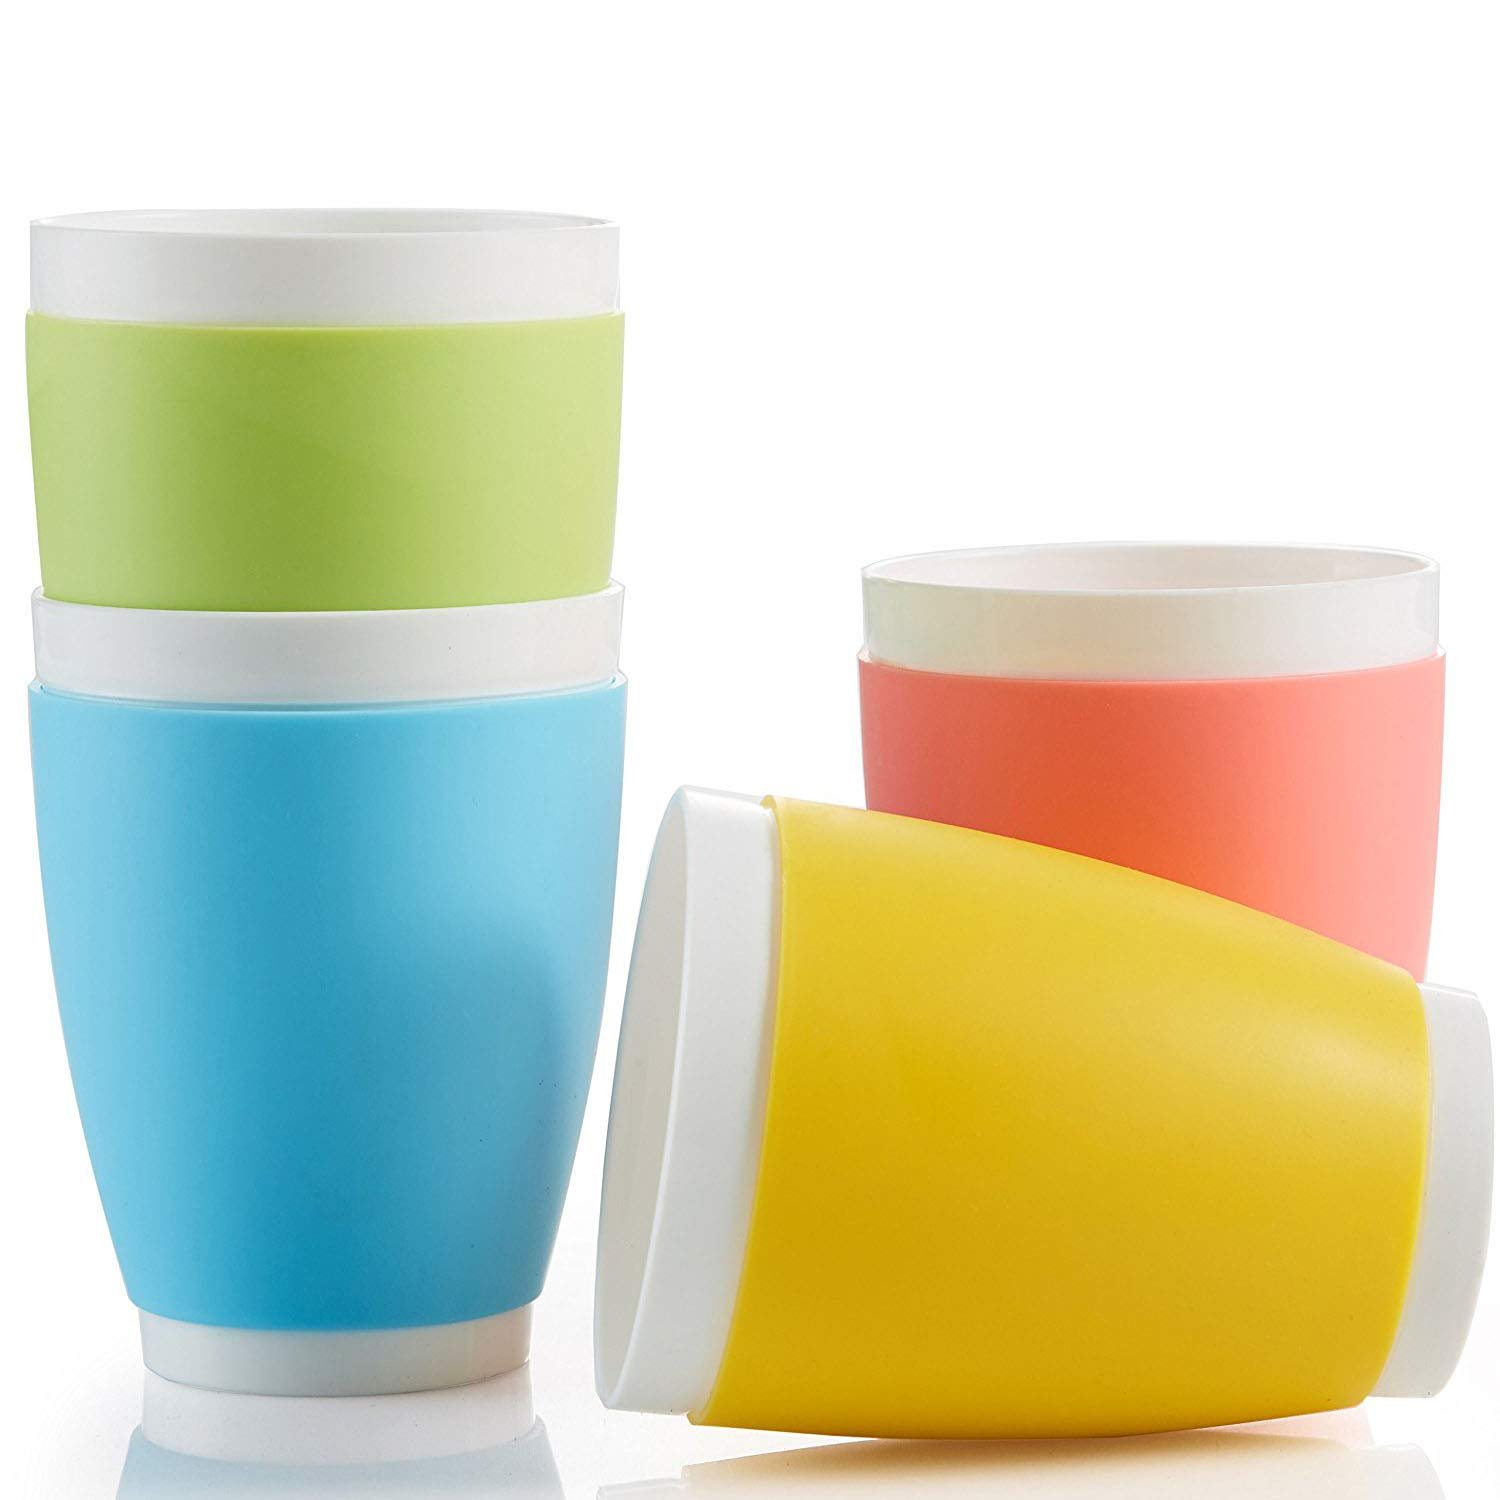 Toddler Cups, Kid's BPA-Free Tumbler Cup for Drinking, Microwave and Dishwasher Safe Tumblers, 4 Cups